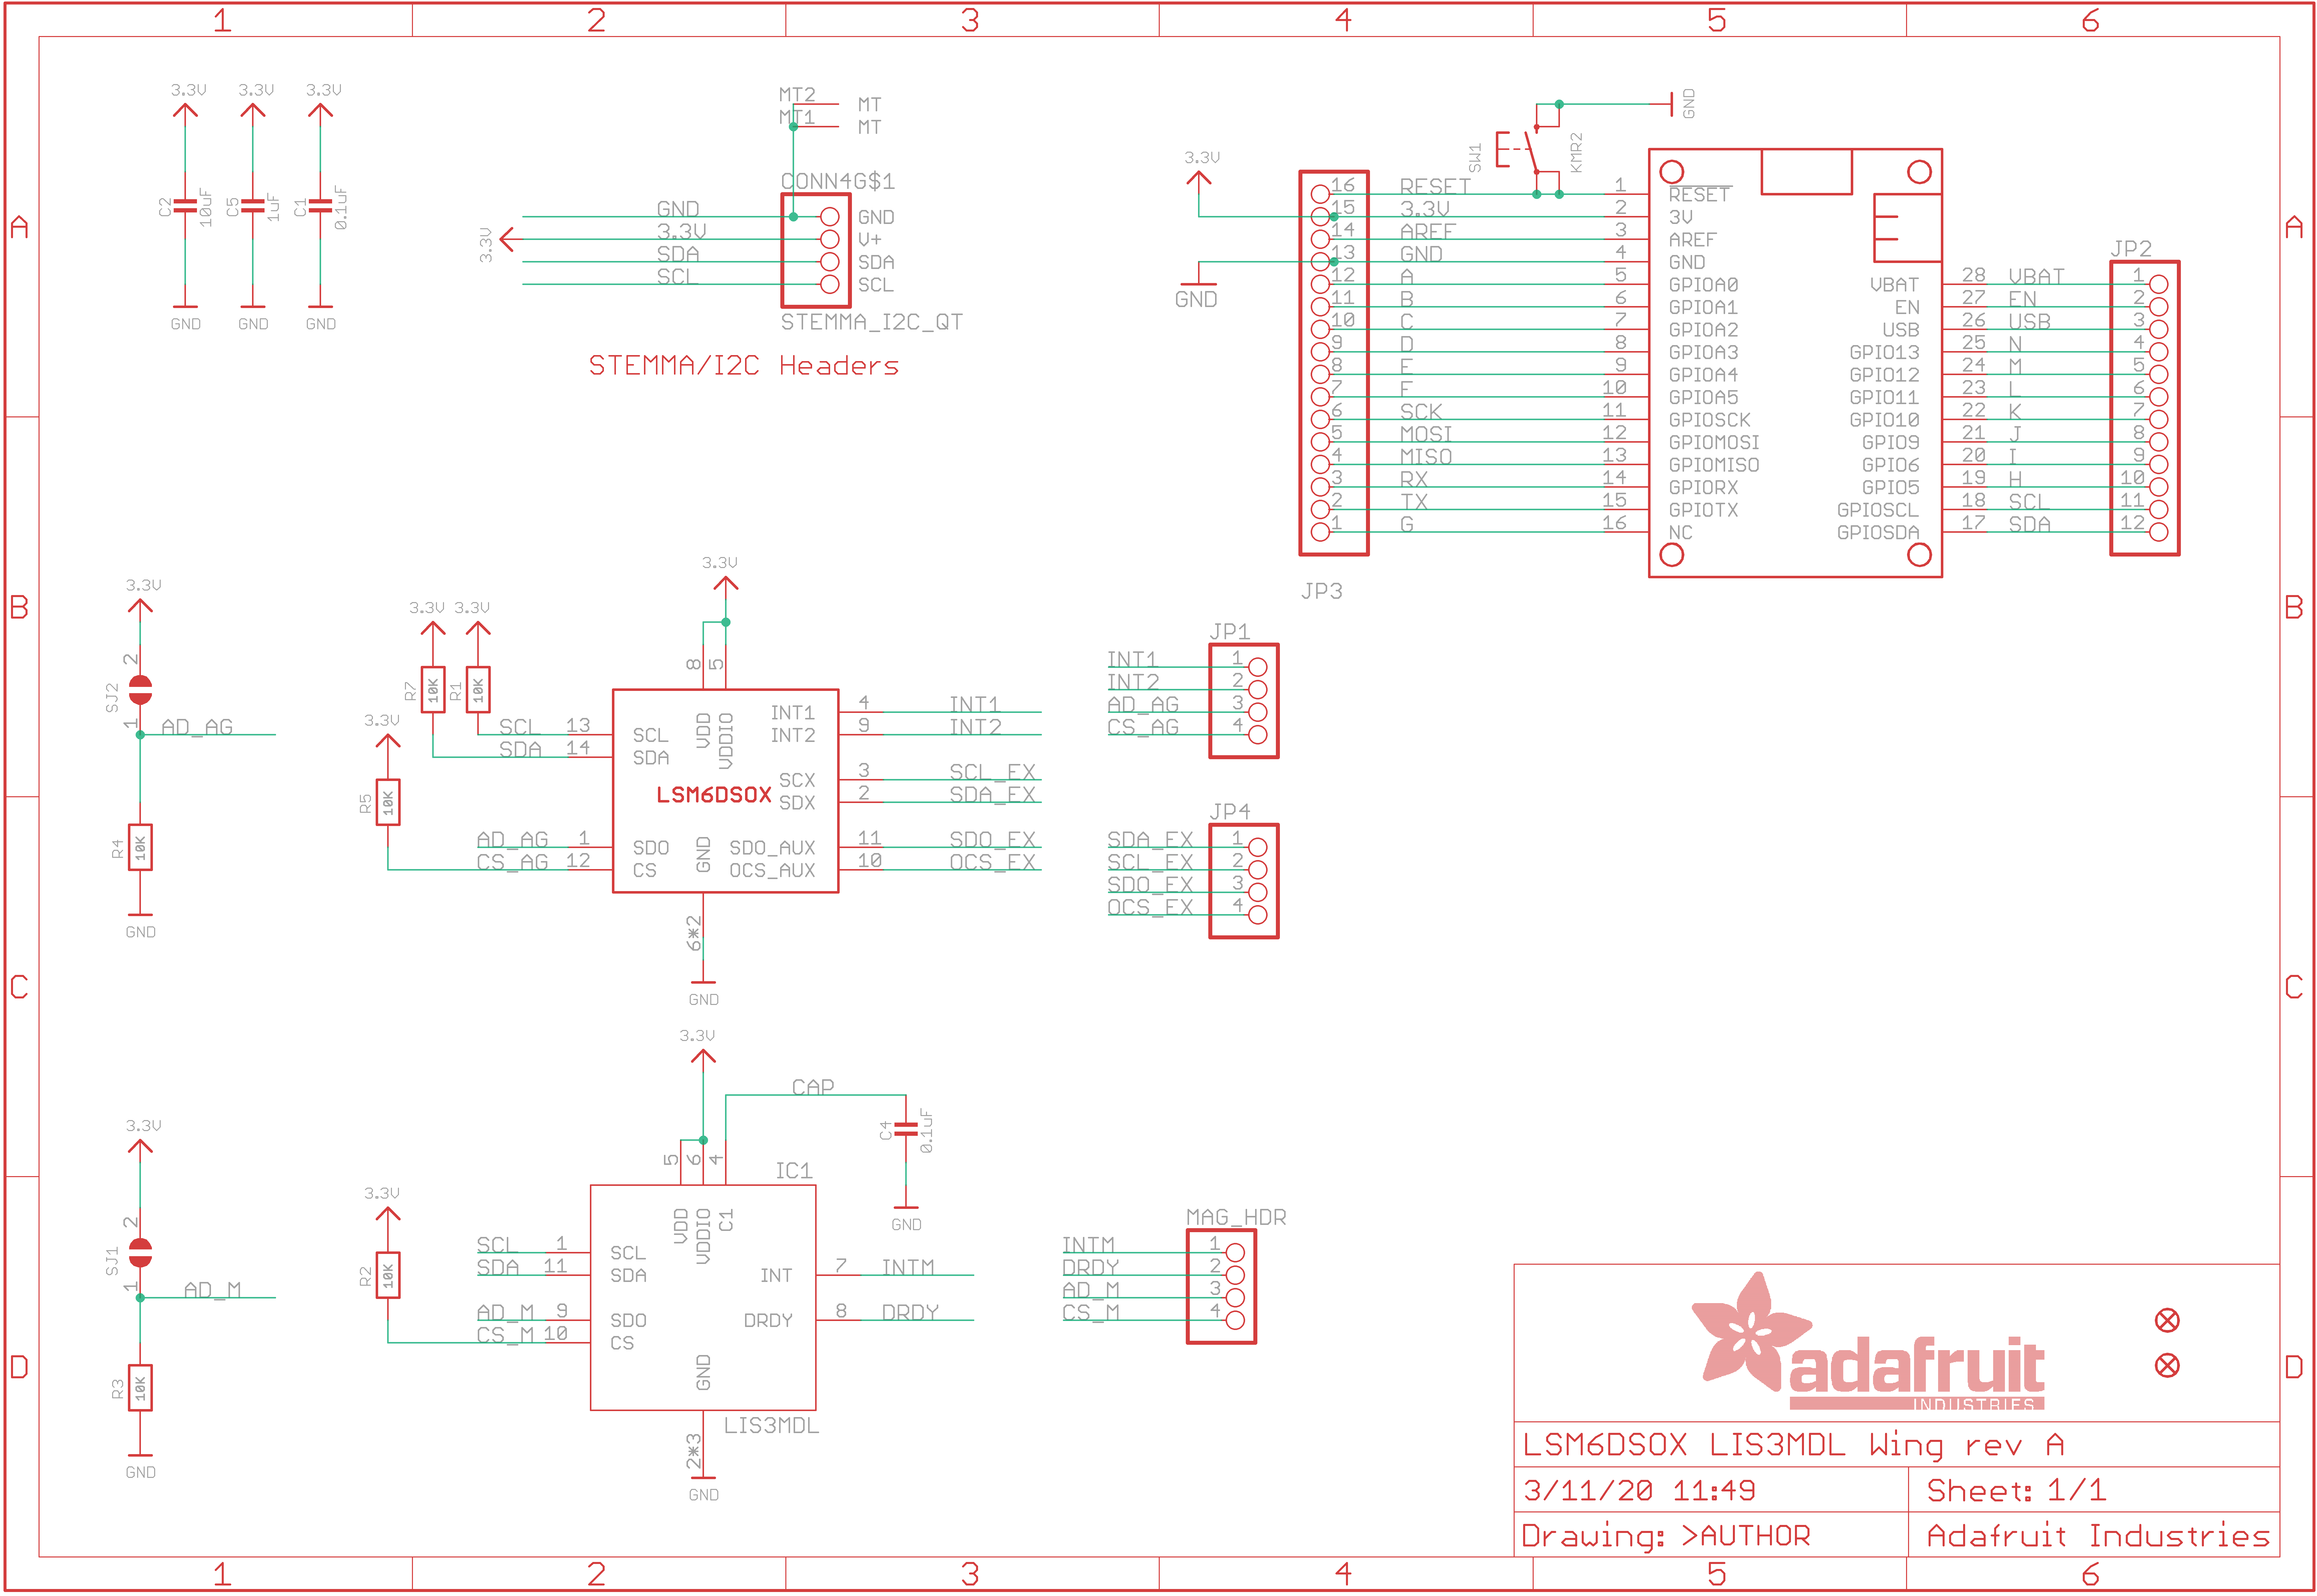 adafruit_products_4565_sch.png